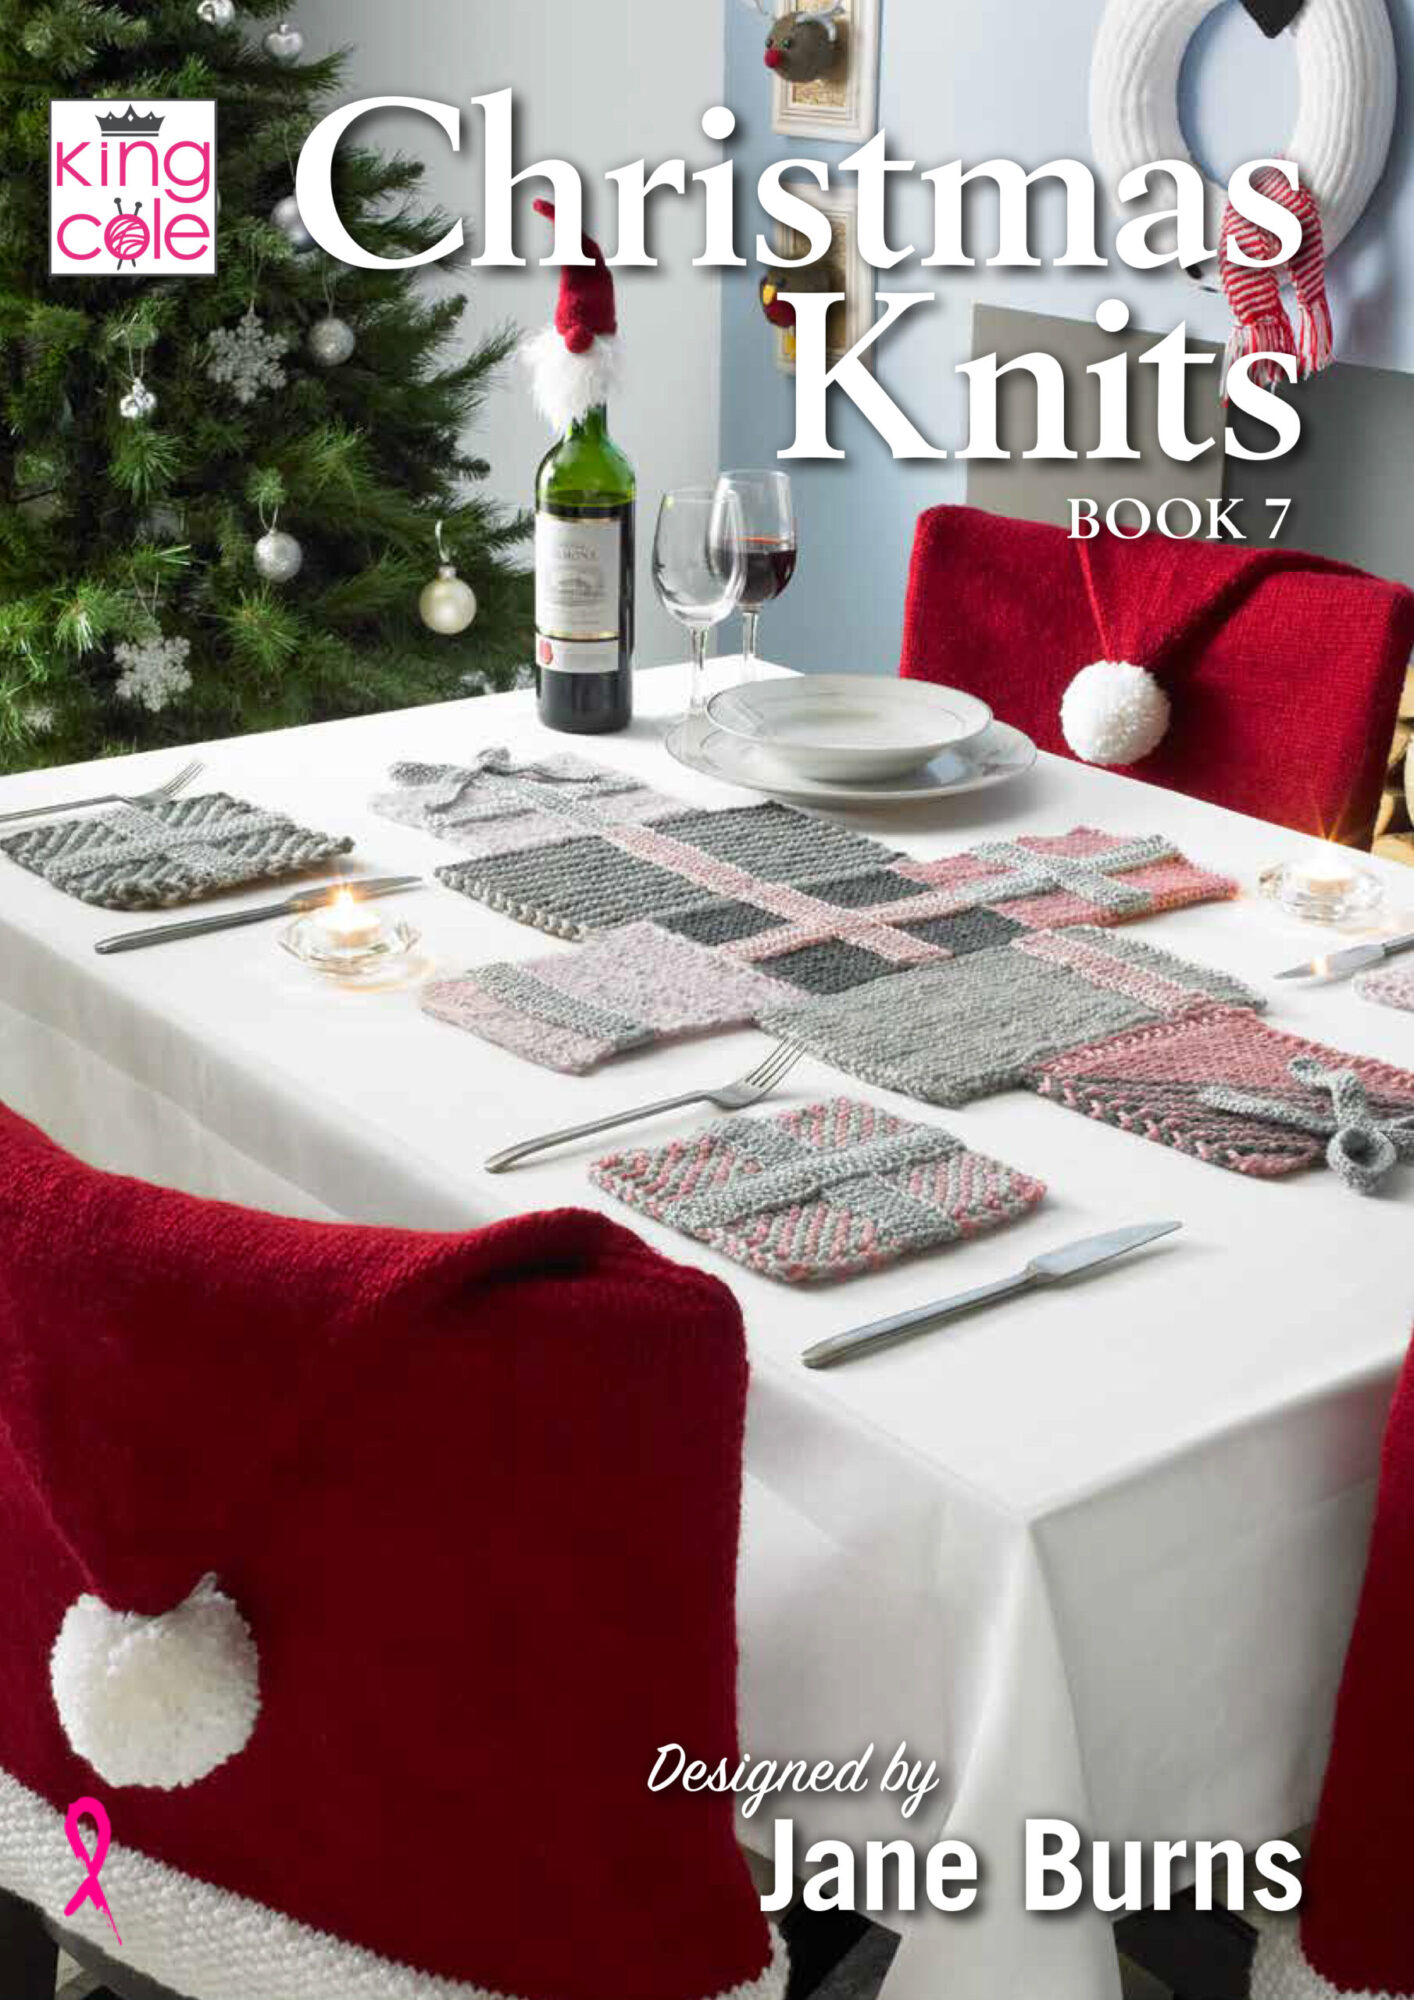 King Cole Christmas Knits – Book 7 product image